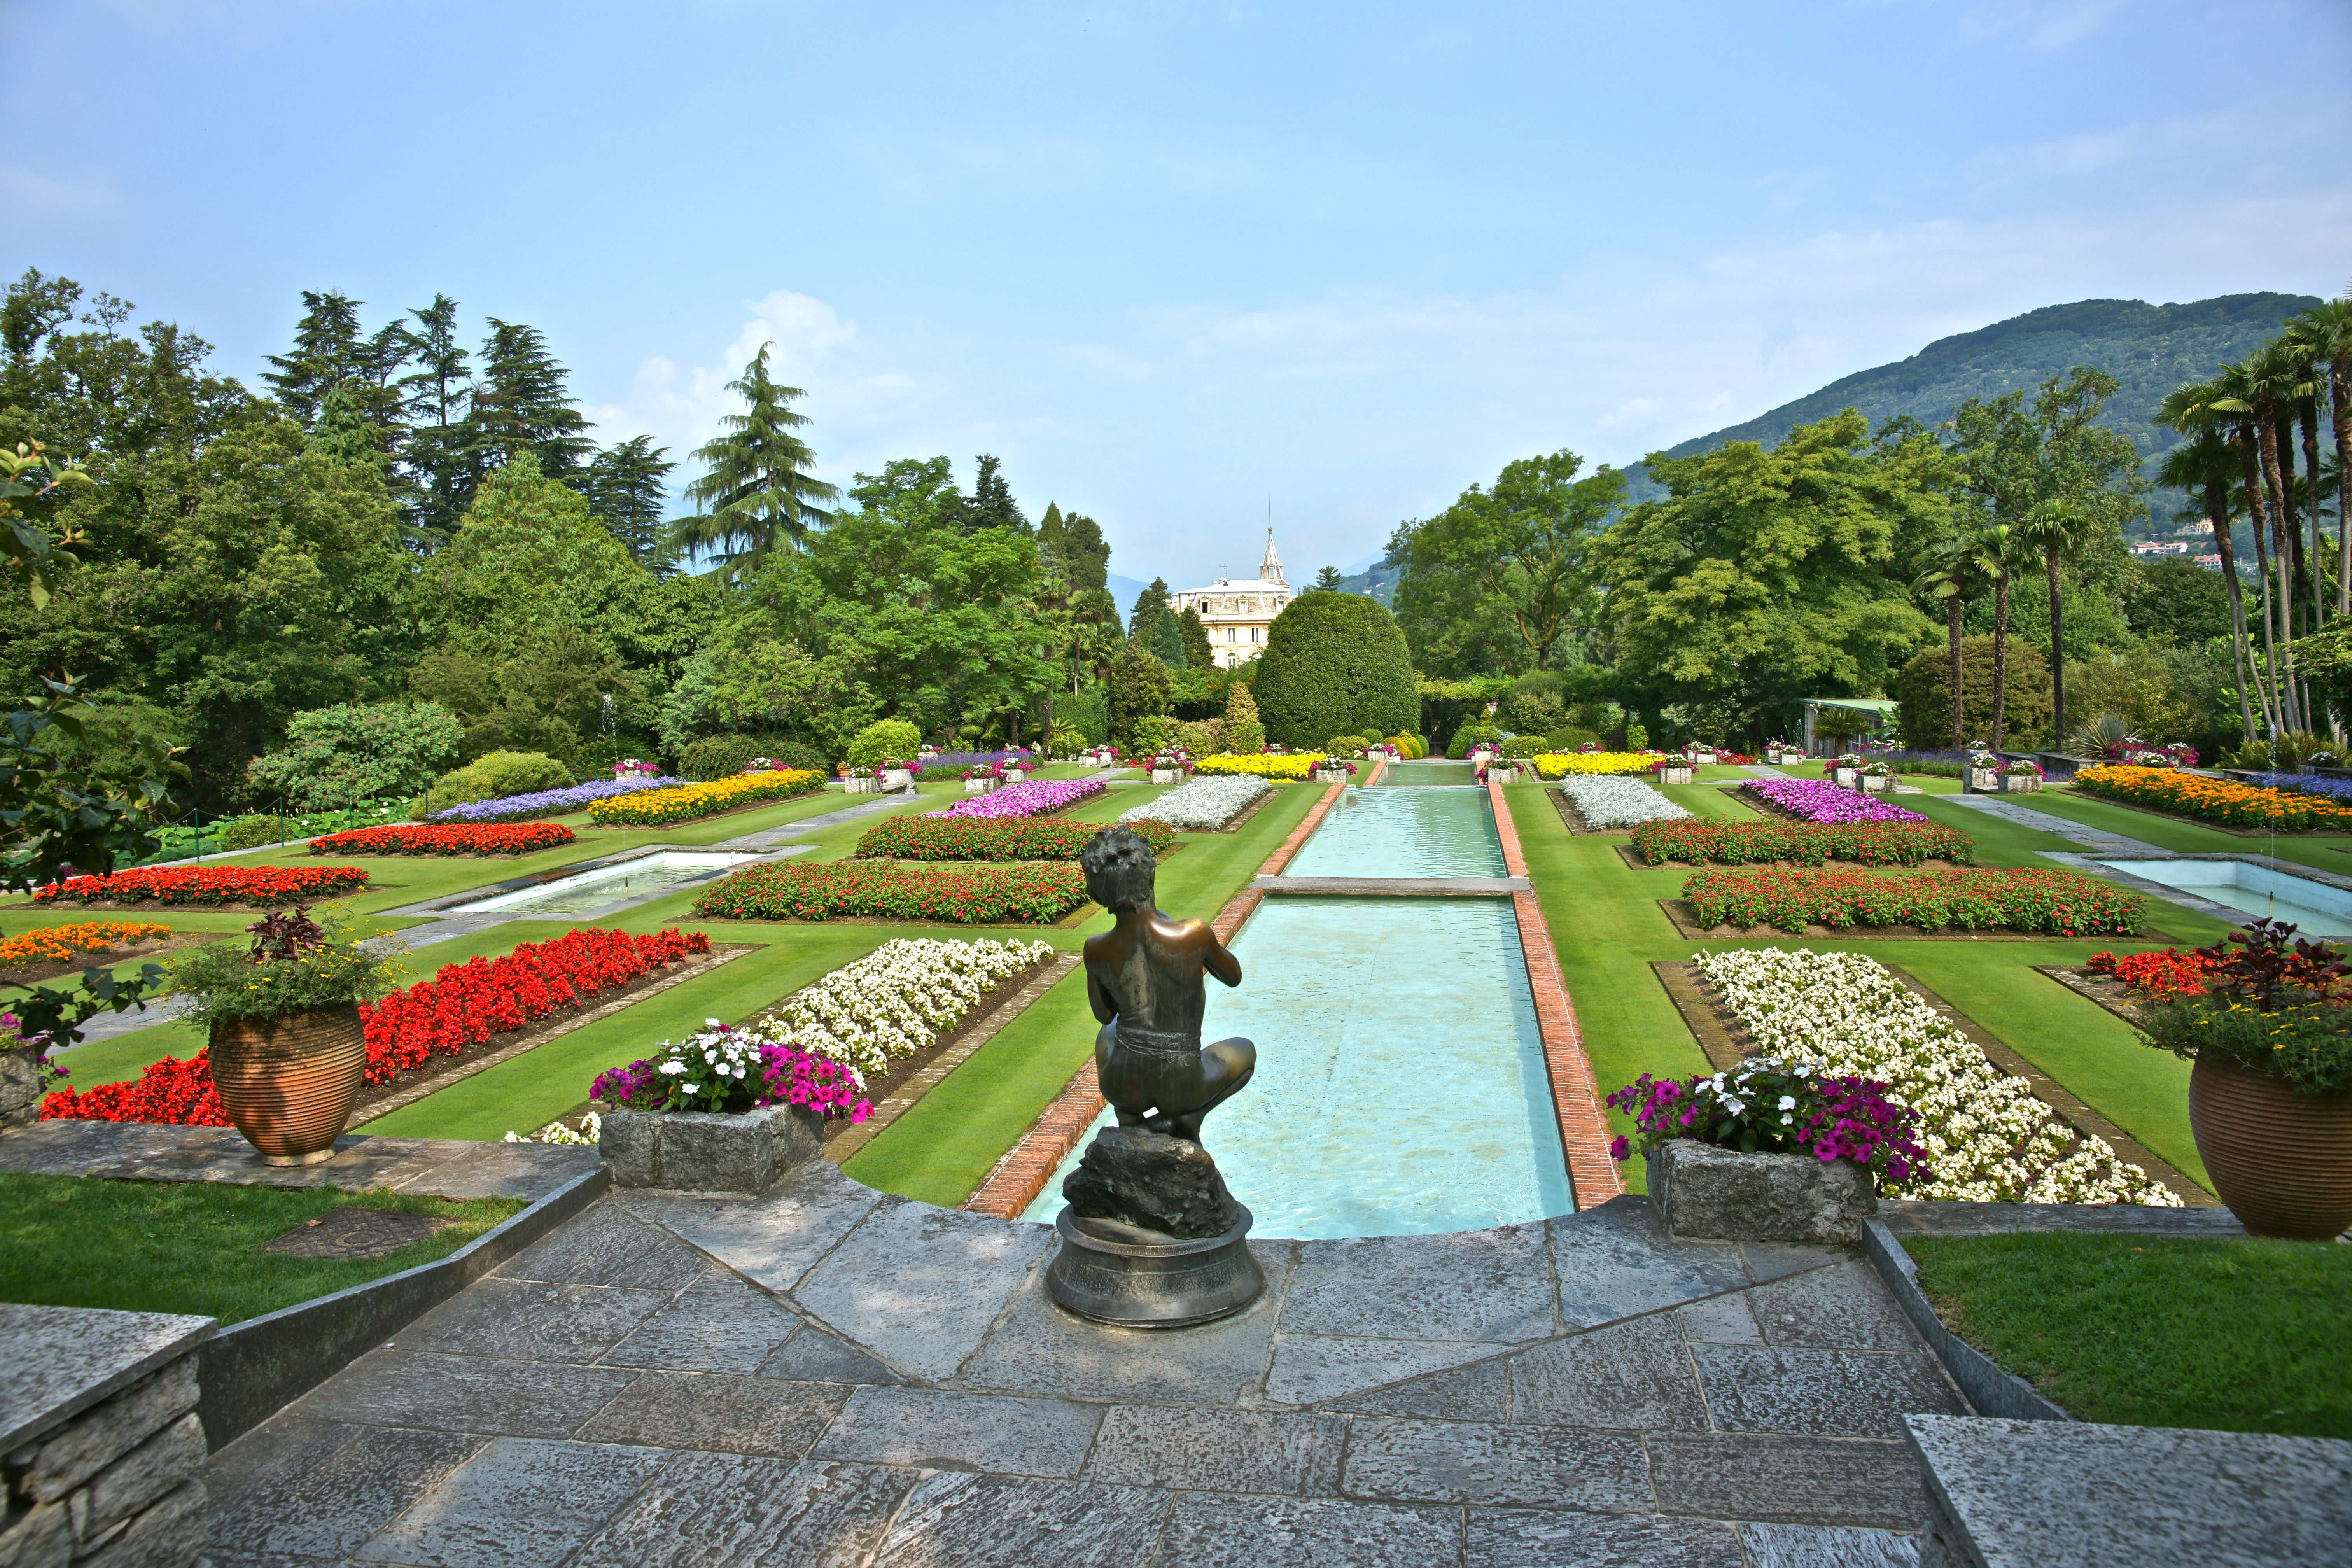 Italy's largest network of historic gardens is celebrating its 20th anniversary